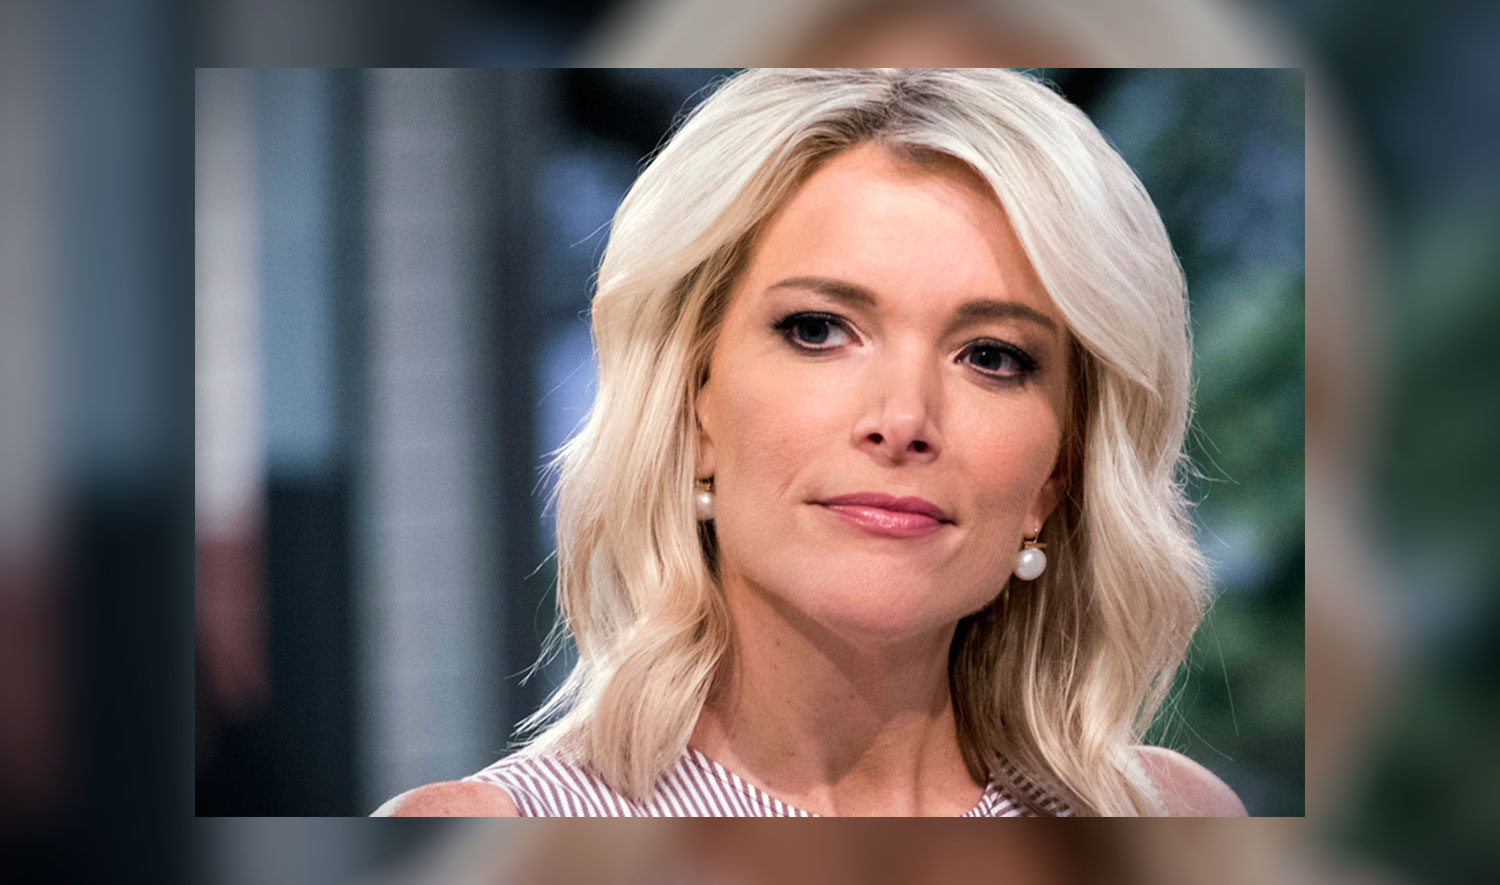 """Megyn Kelly poses on the set of her new show, """"Megyn Kelly Today"""" at NBC Studios on Thursday, Sept, 21, 2017, in New York. Kelly's talk show debuts Monday, Sept. 25, at 9 a.m. EDT. (Photo by Charles Sykes/Invision/AP)"""